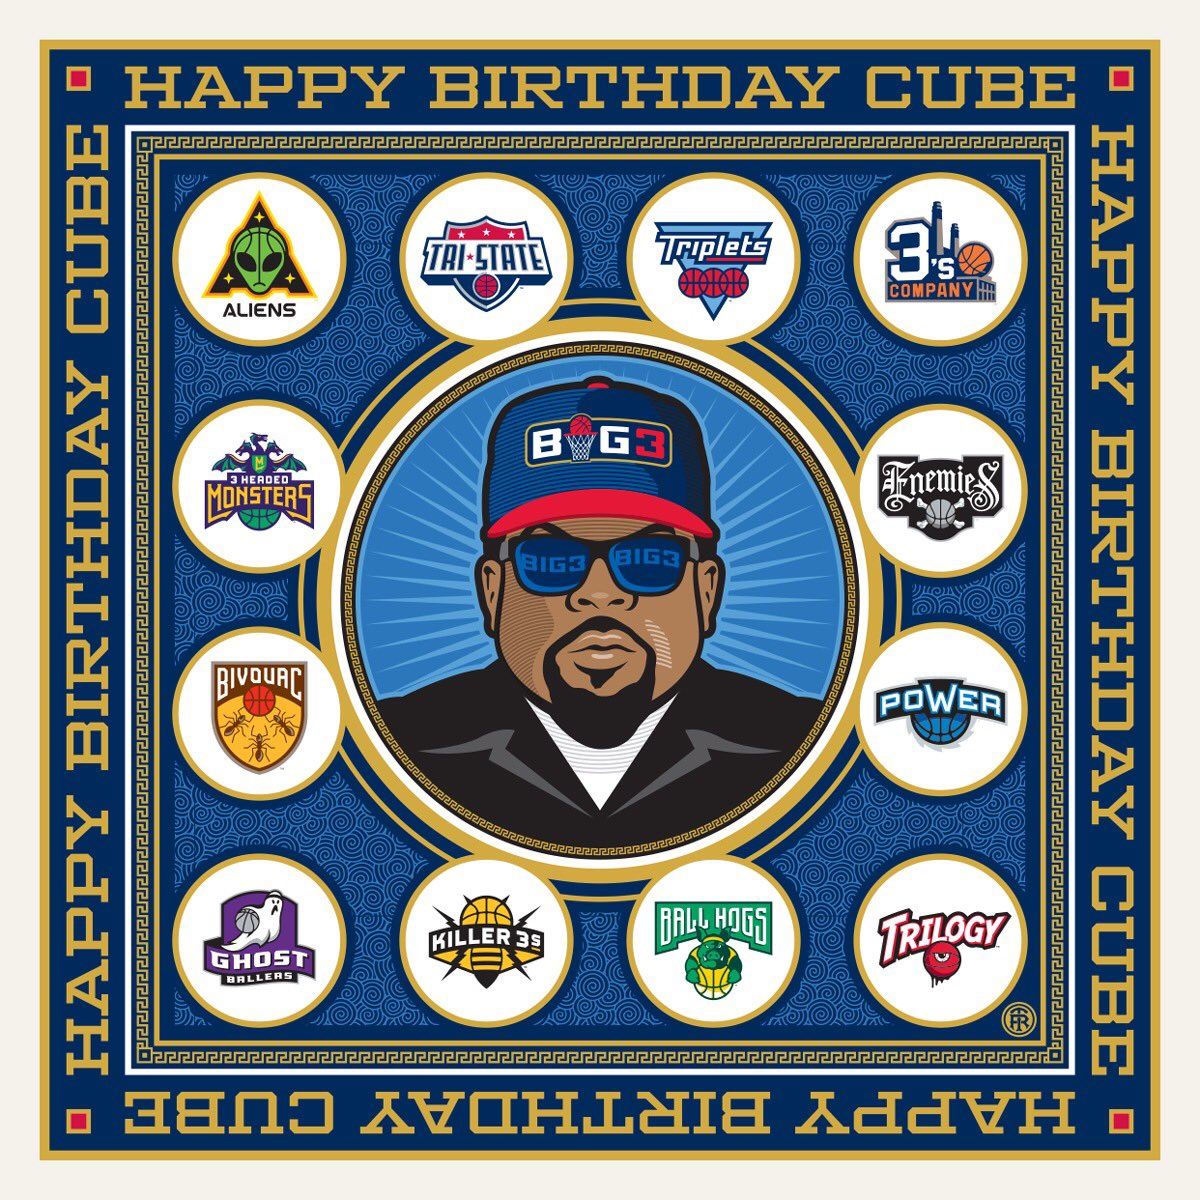 Shouting Happy Birthday to the Boss! @icecube cause you already know....Today Was A Good Day! #BIG3 Baby🏀